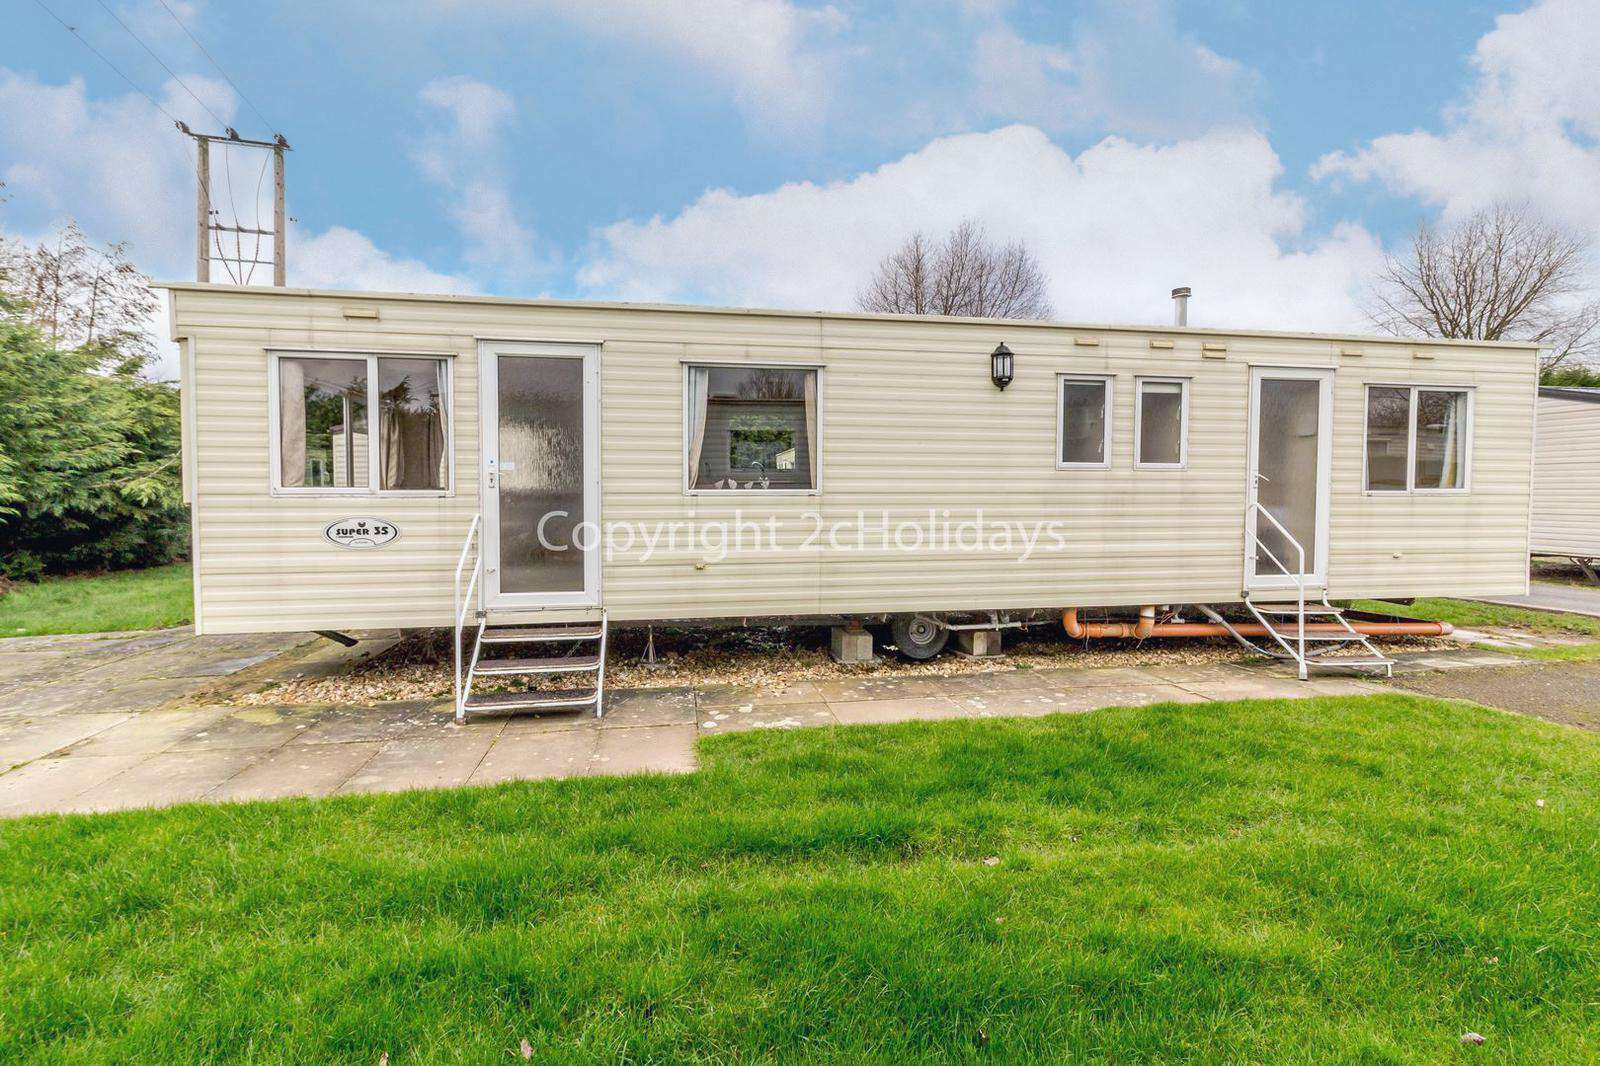 33035E – The Elms area, 3 bed, 8 berth caravan near to amenities. Emerald rated. - property